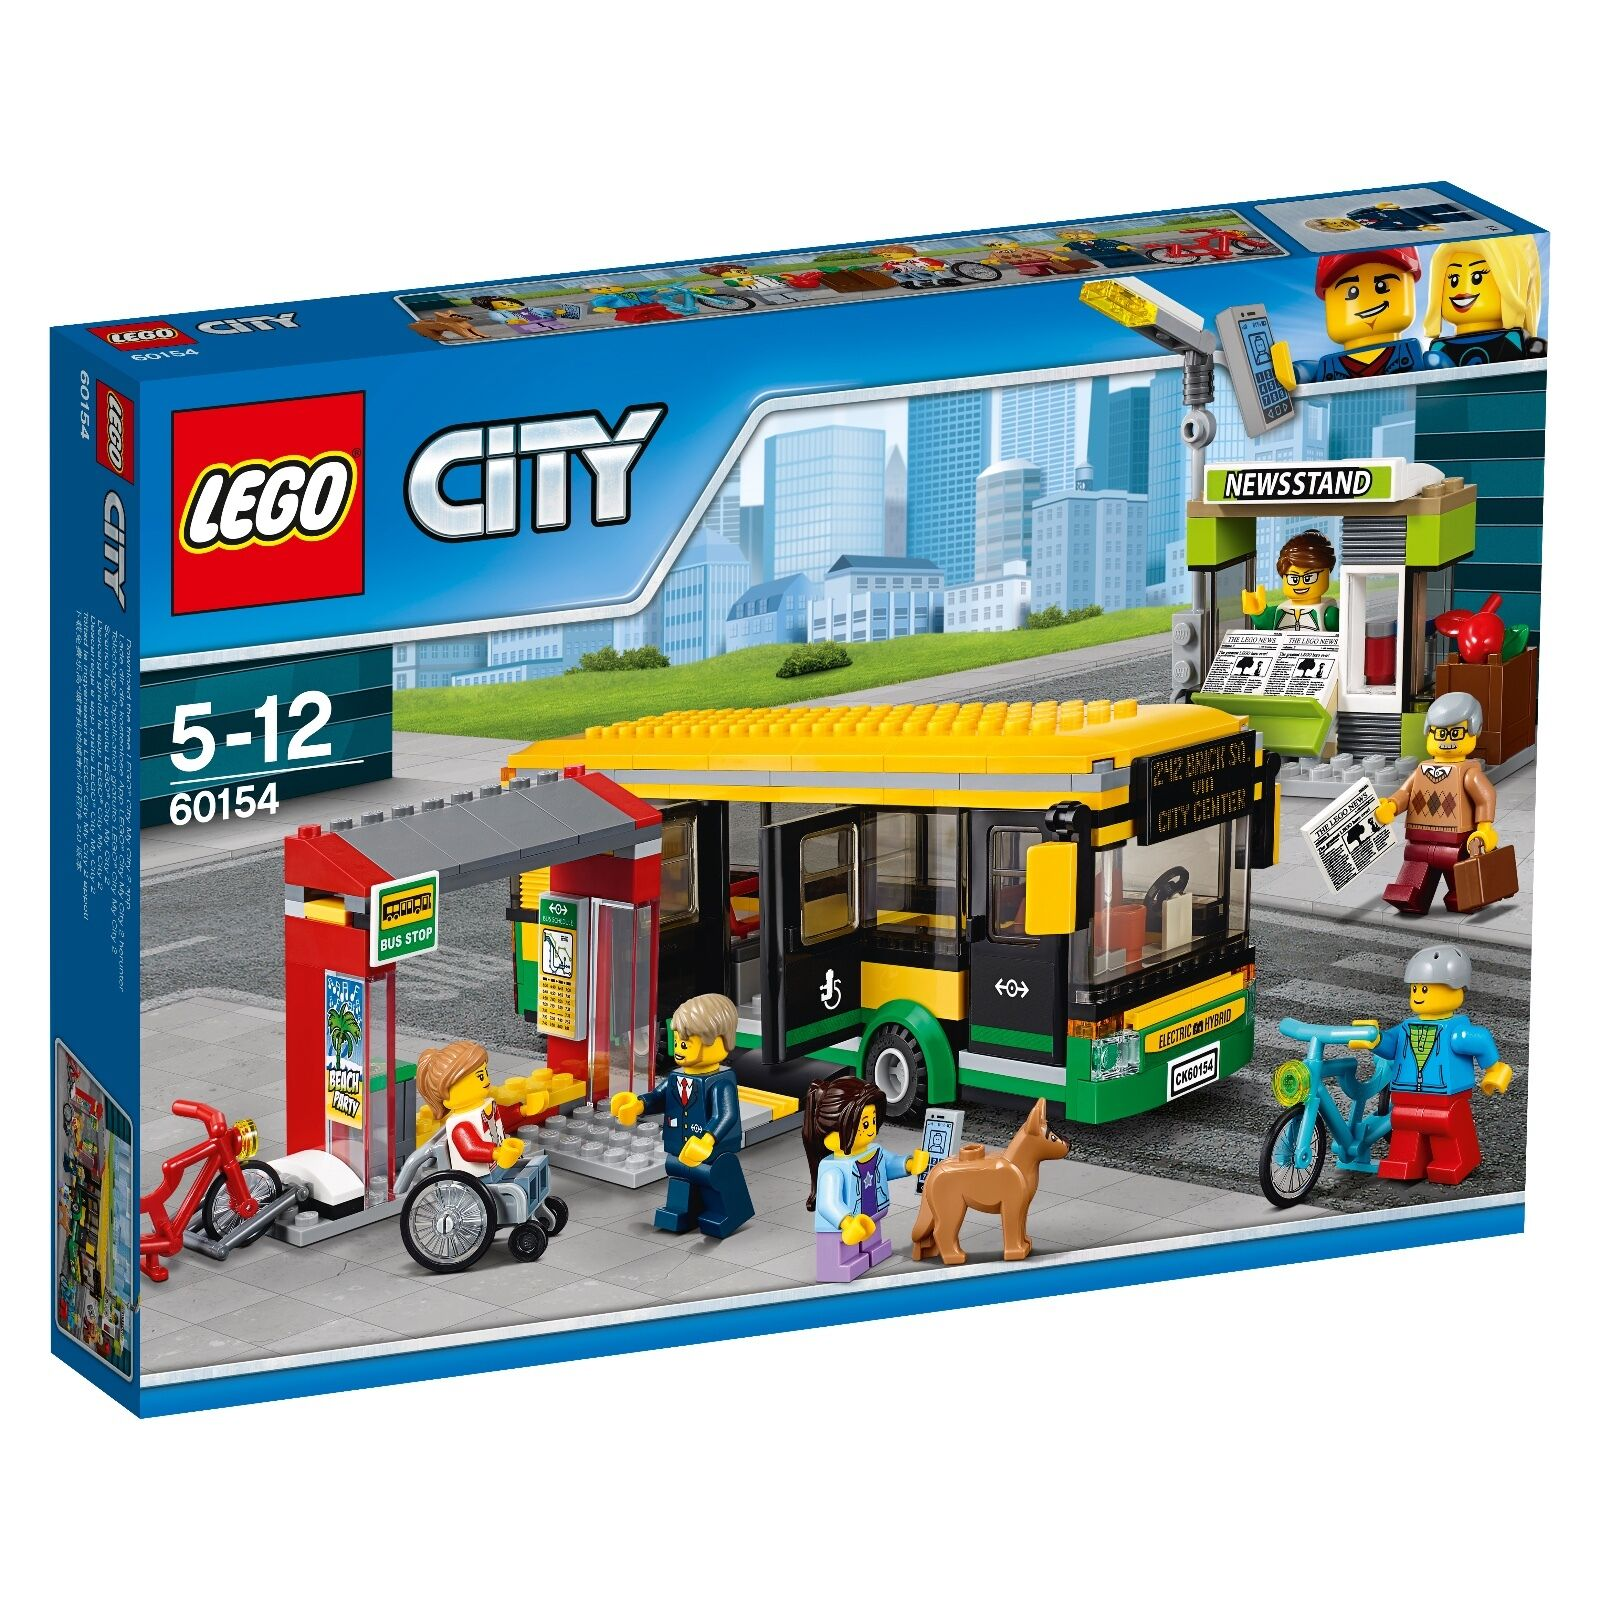 Lego ® City 60154 terminal de autobuses nuevo embalaje original _ New misb NRFB lego ® City 60154 Bus Station